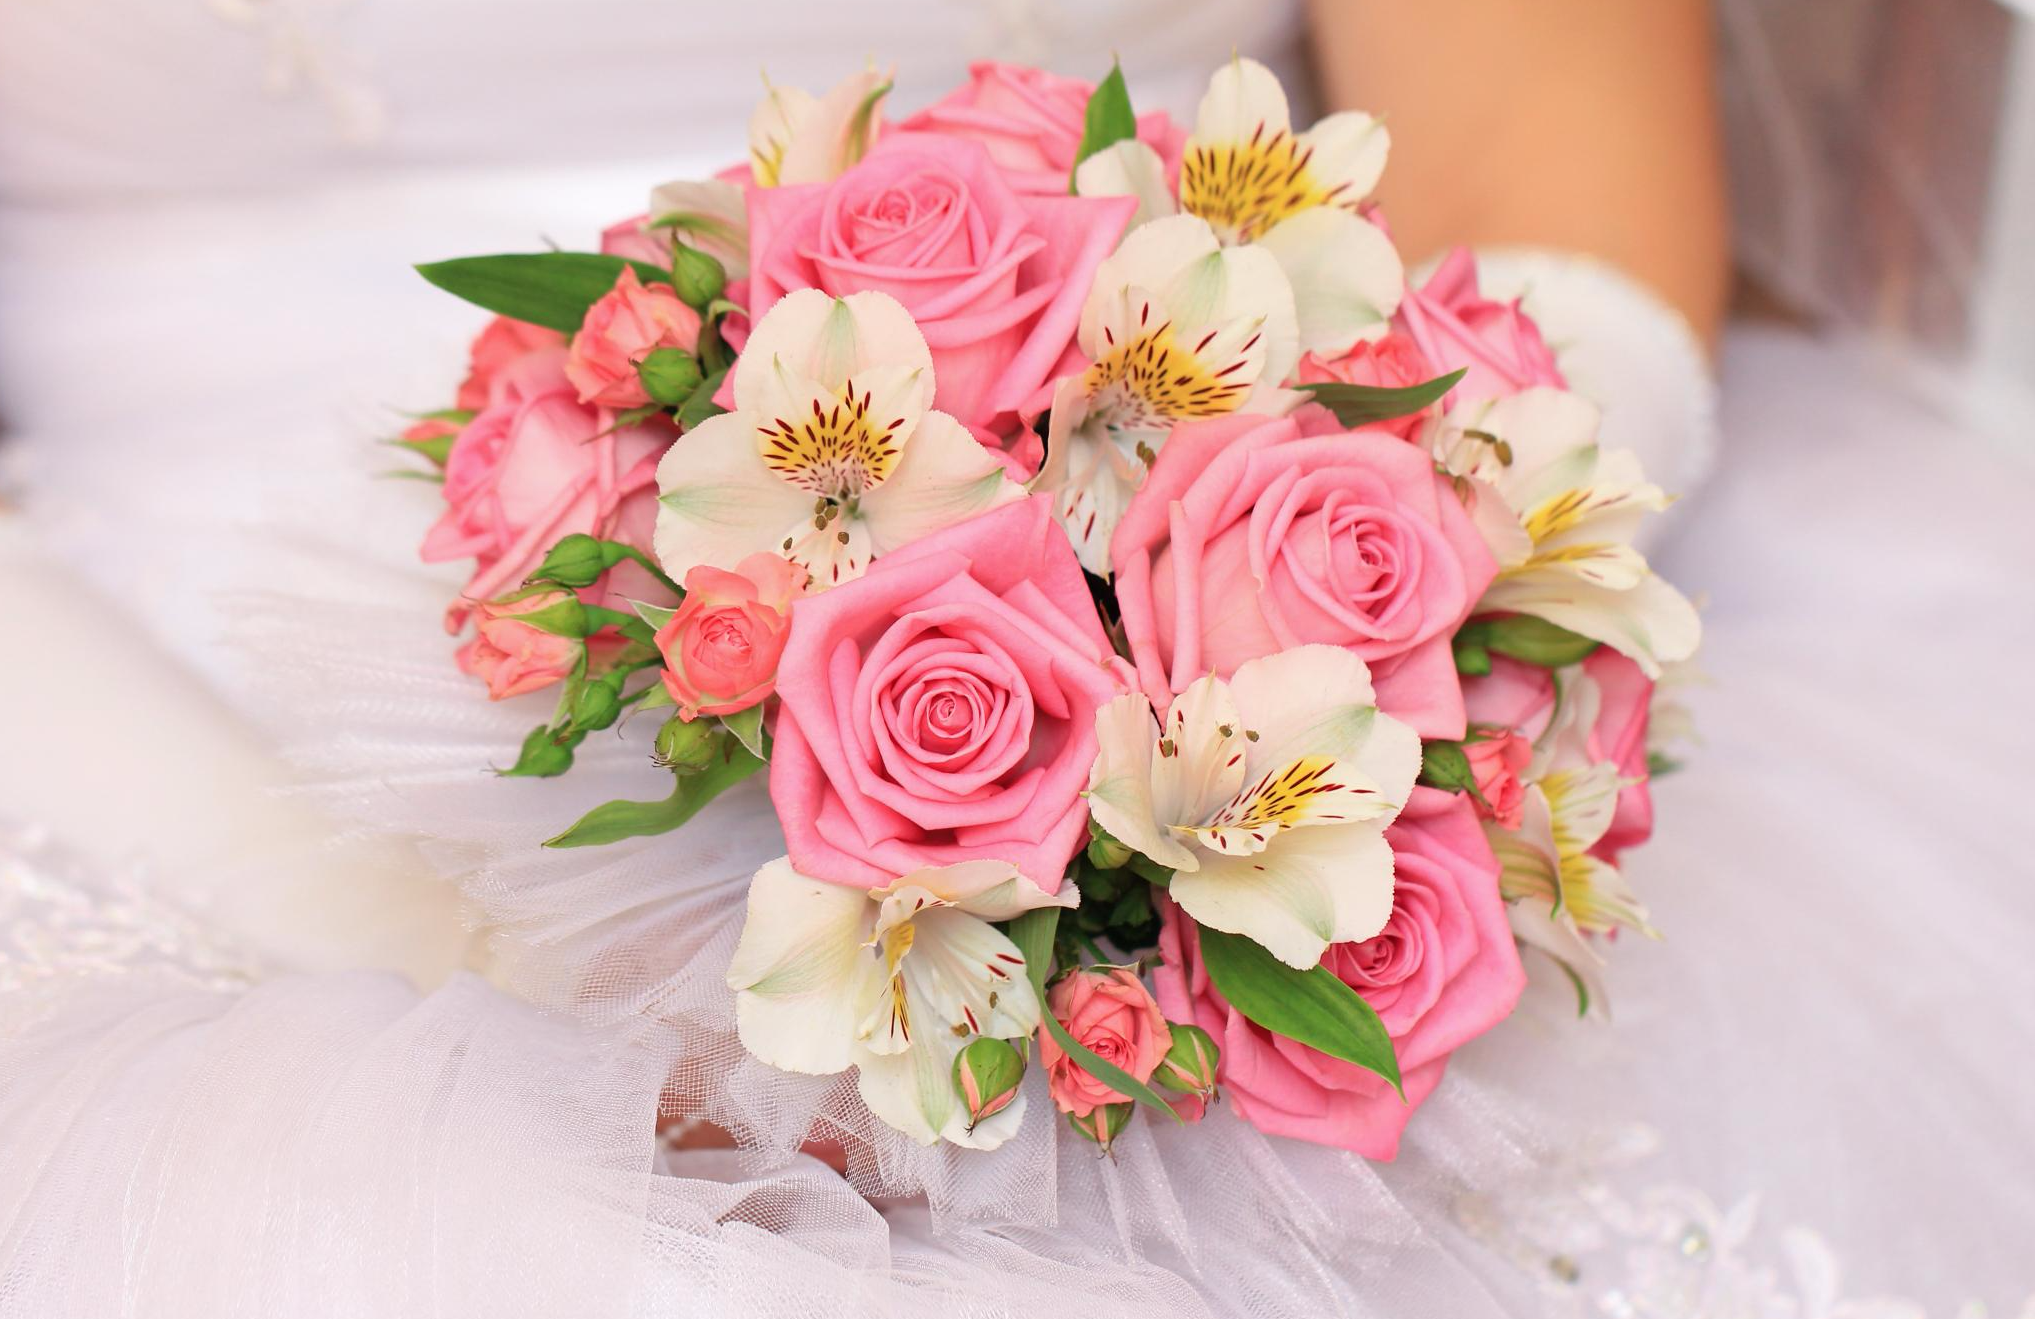 Raleigh Nc Florists Provide Wedding Flowers Centerpieces And